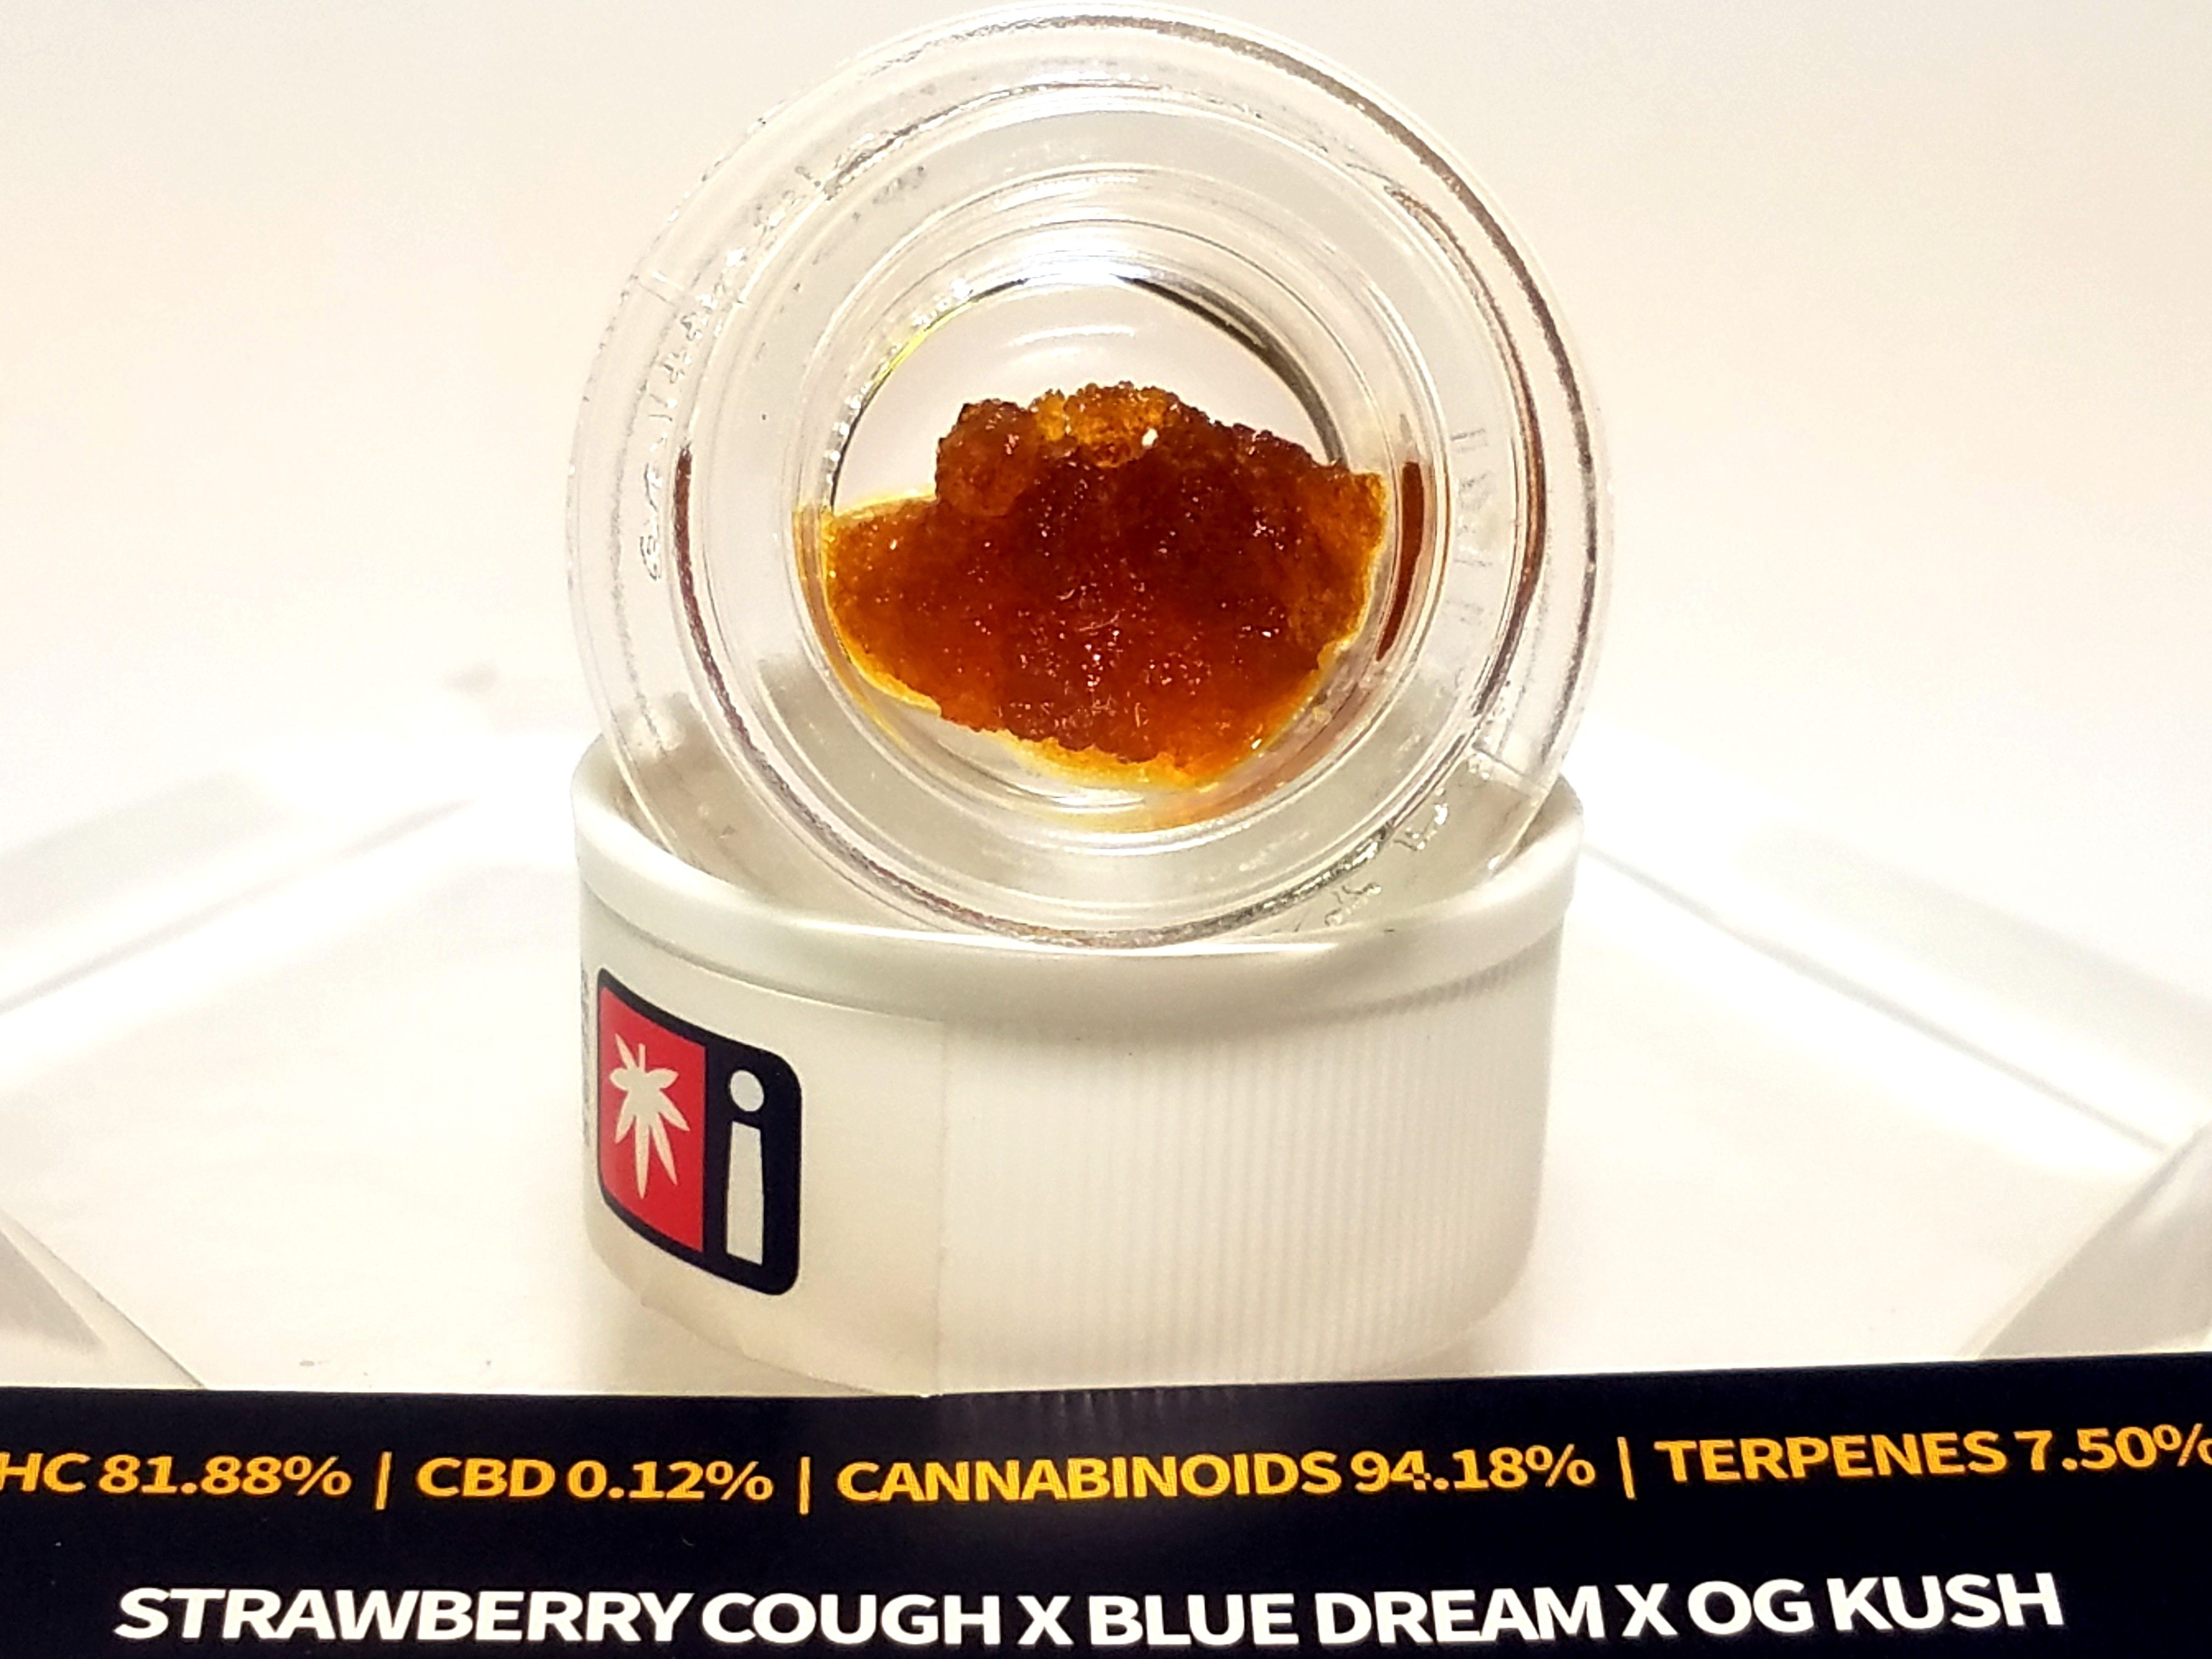 Bobsled - Strawberry Cough x Blue Dream x OG Kush, Hybrid, Live Resin